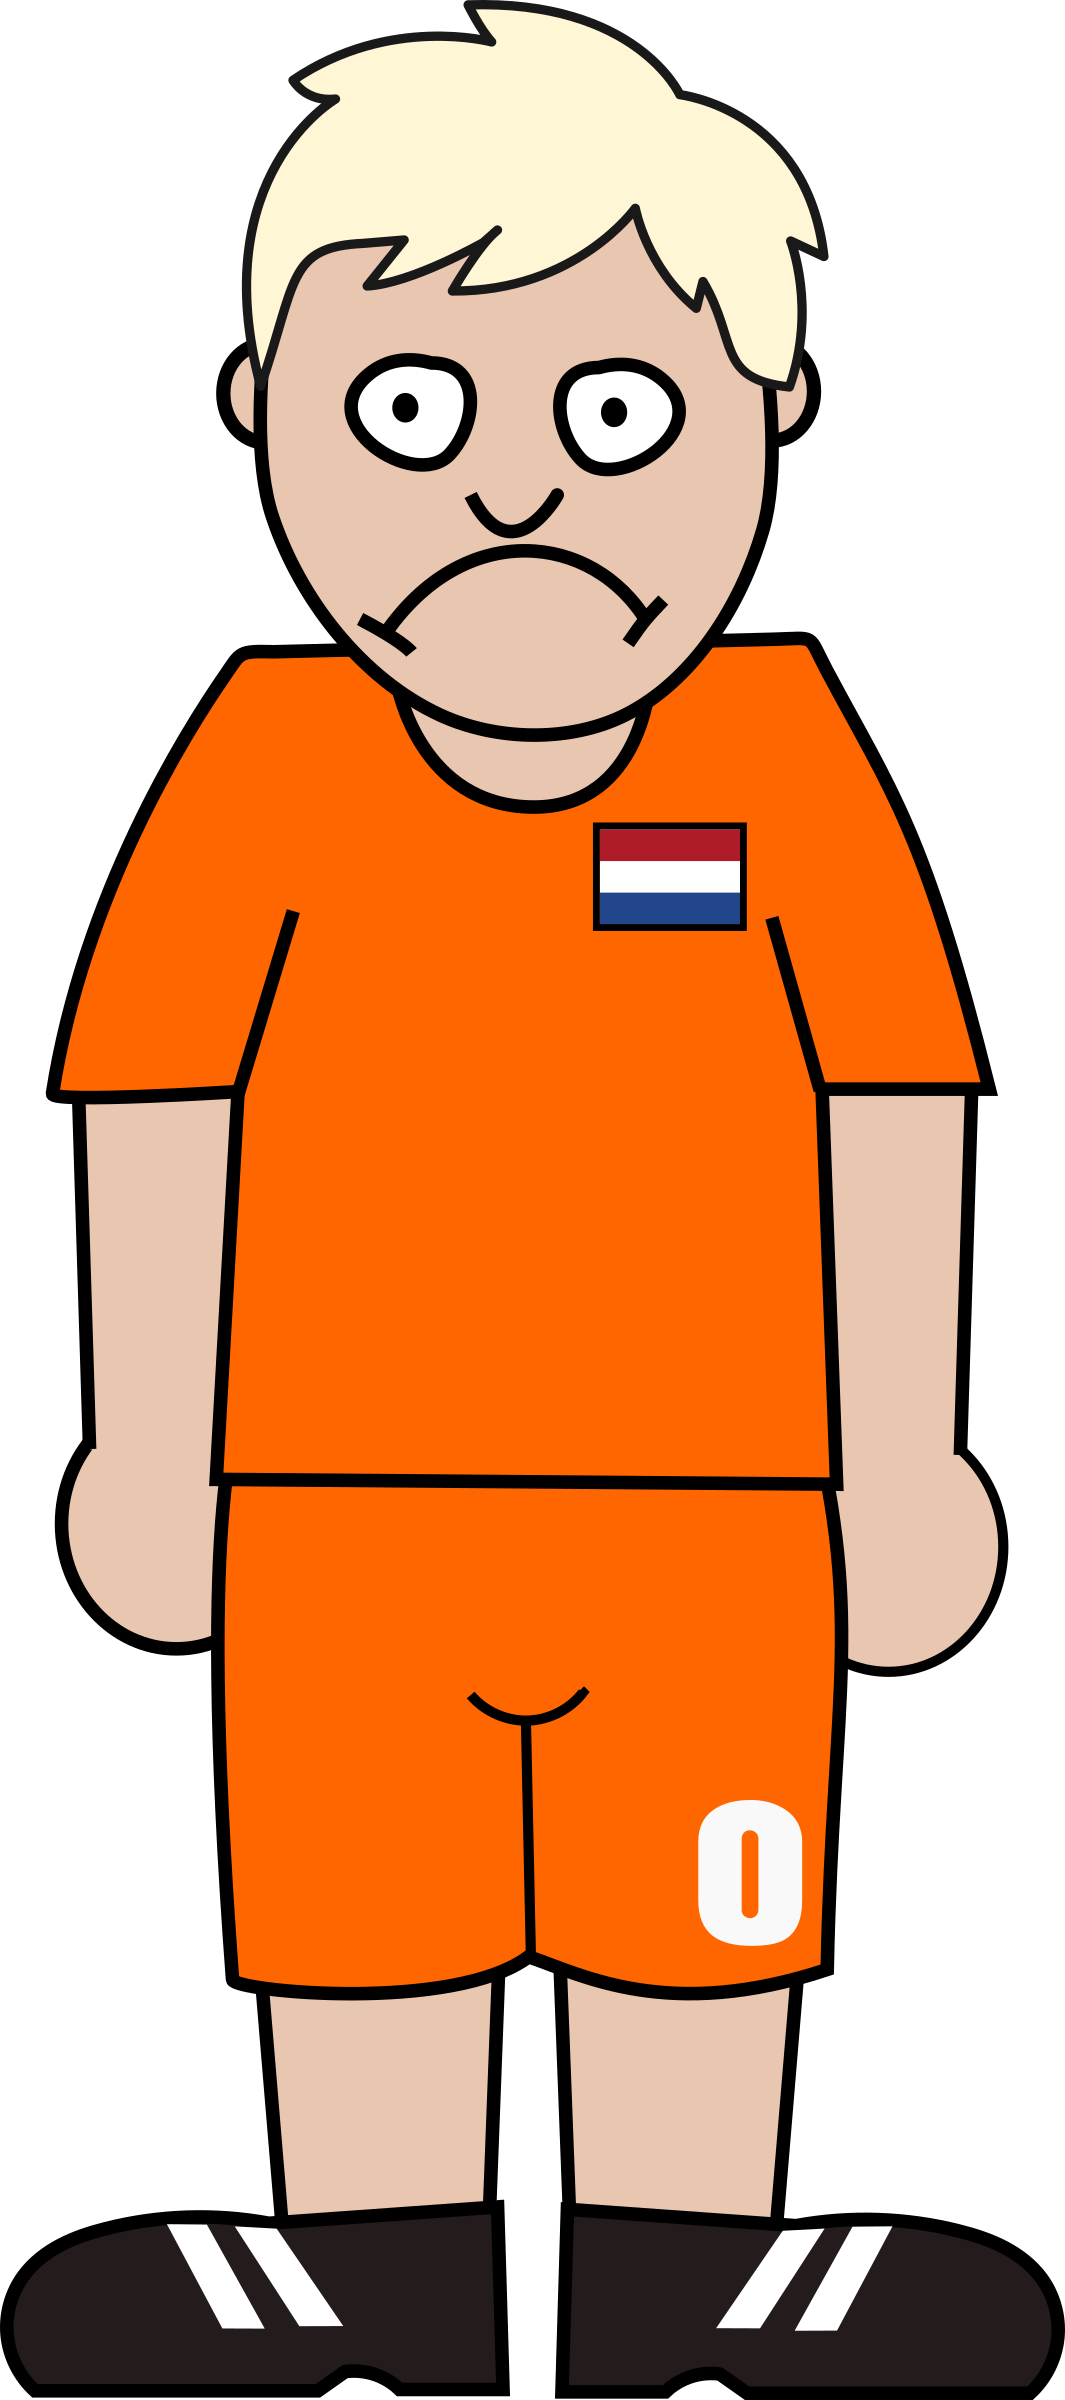 Clipart - Football player netherland royalty free